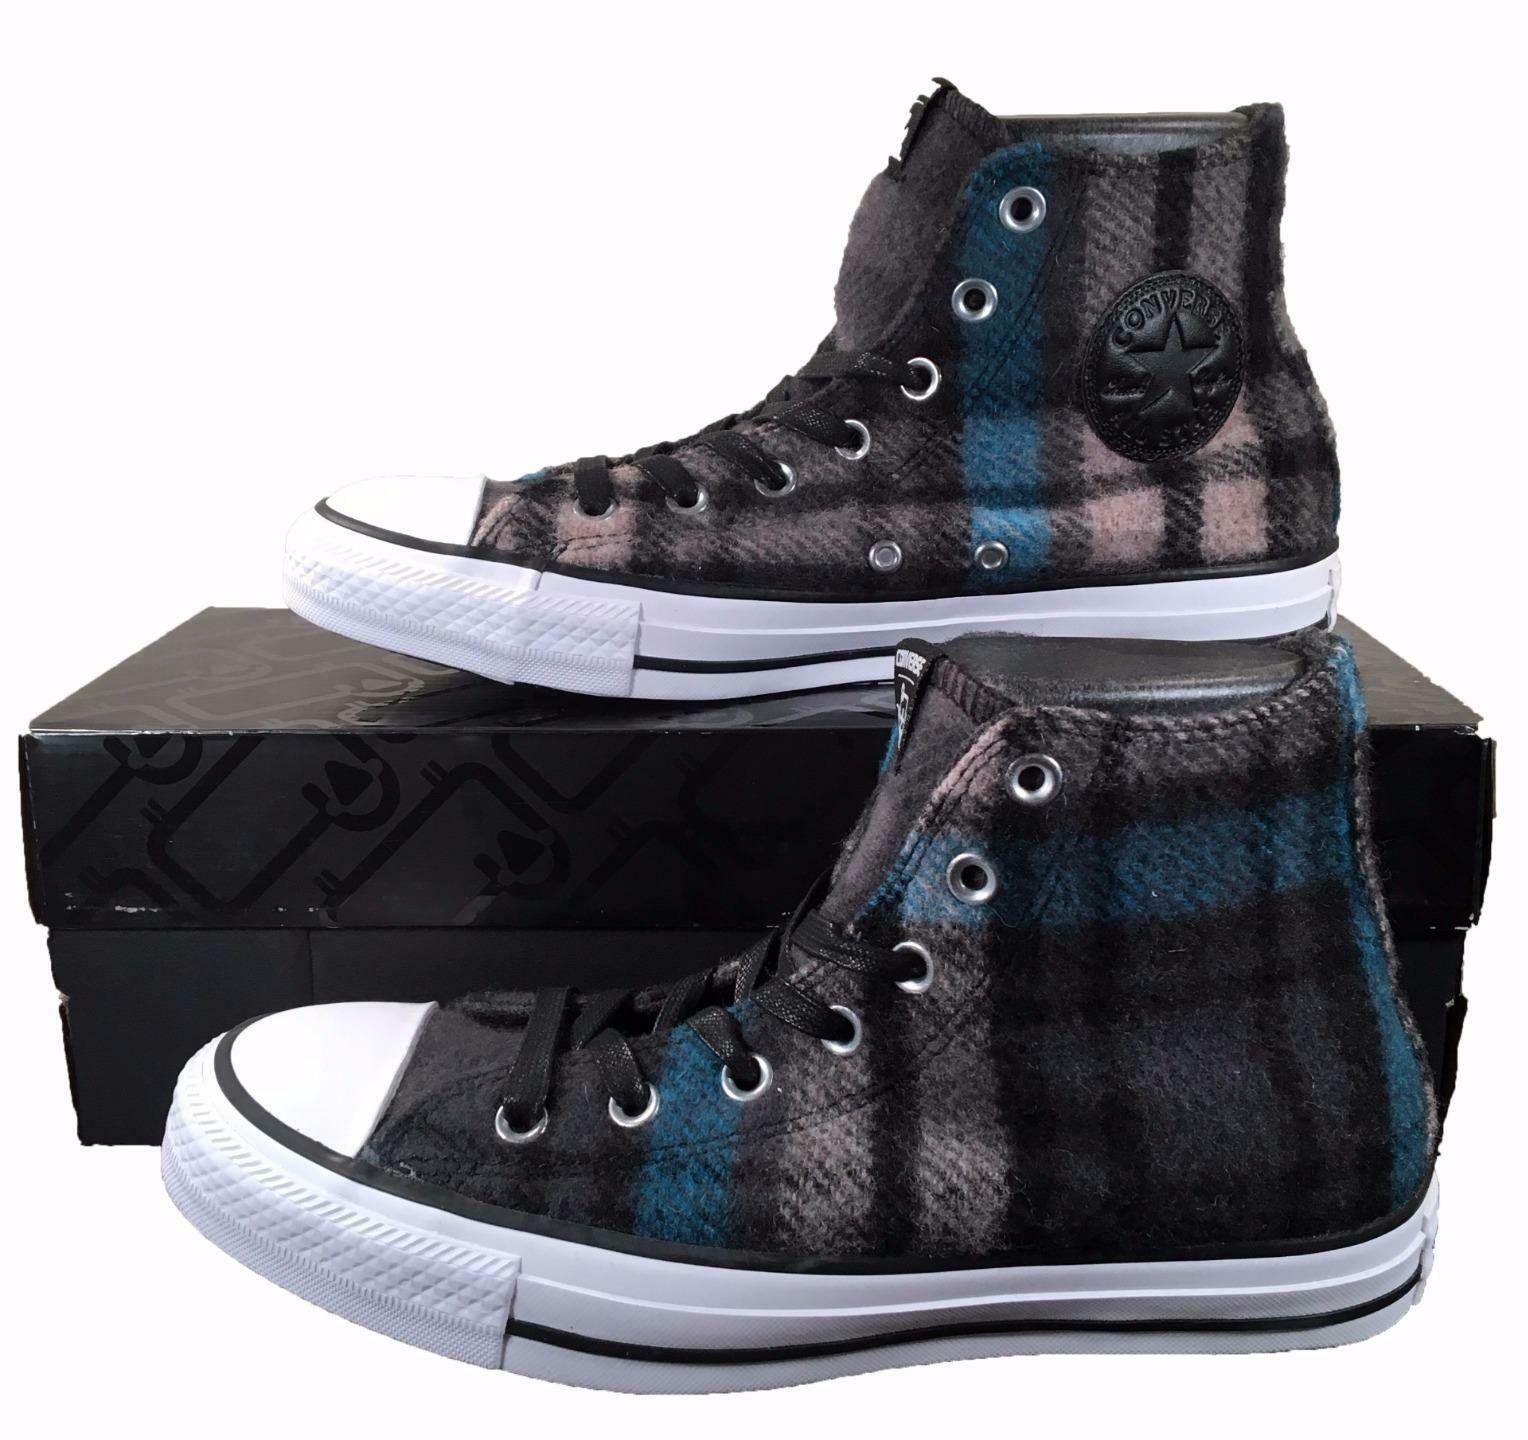 Converse by Woolrich Chuck Taylor All Star Sneakers bluee Black Plaid Wool 149455